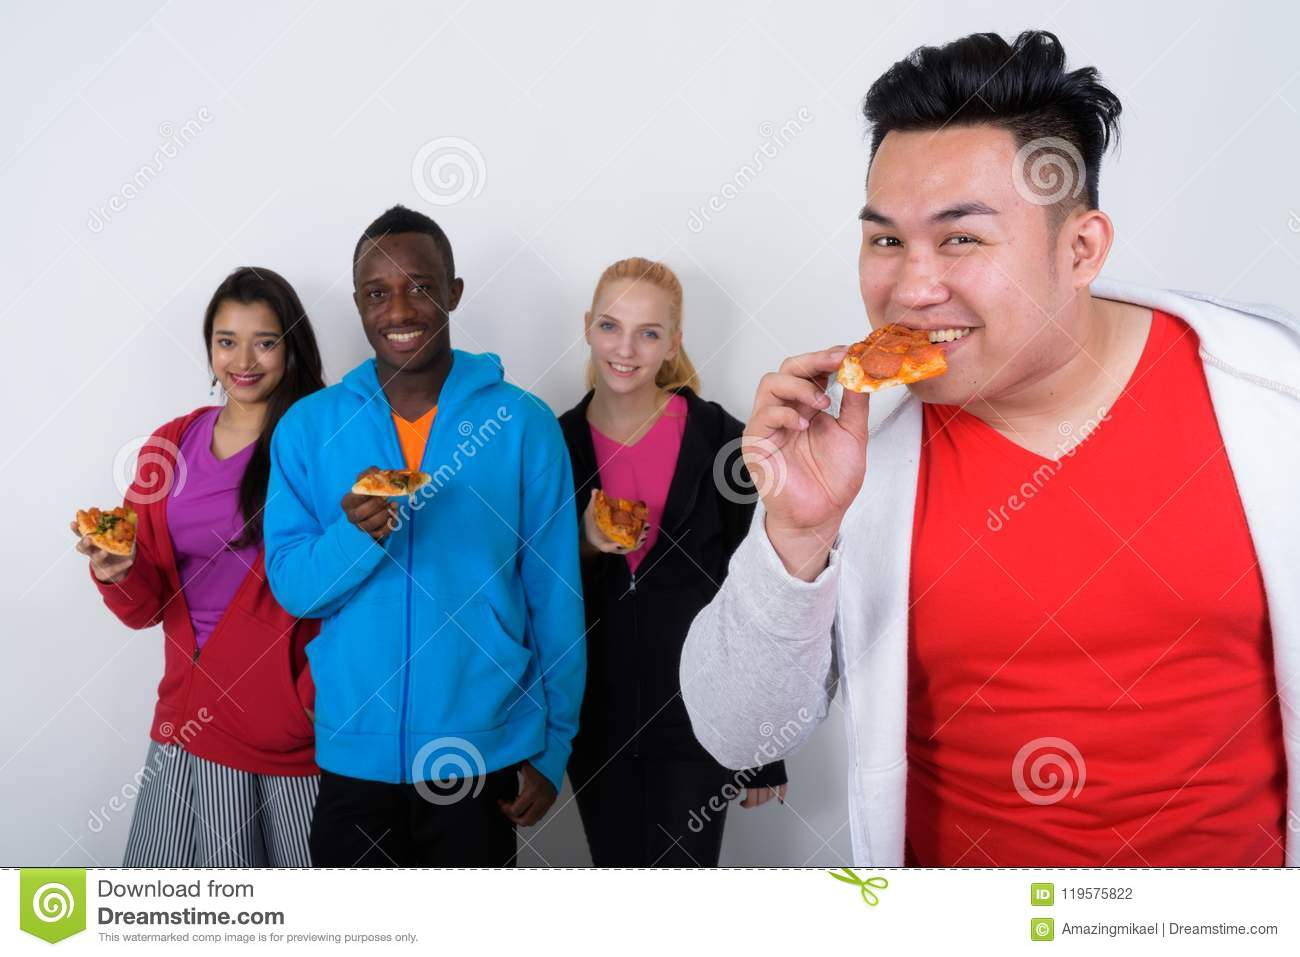 Happy young Asian man eating slice of pizza with diverse group o